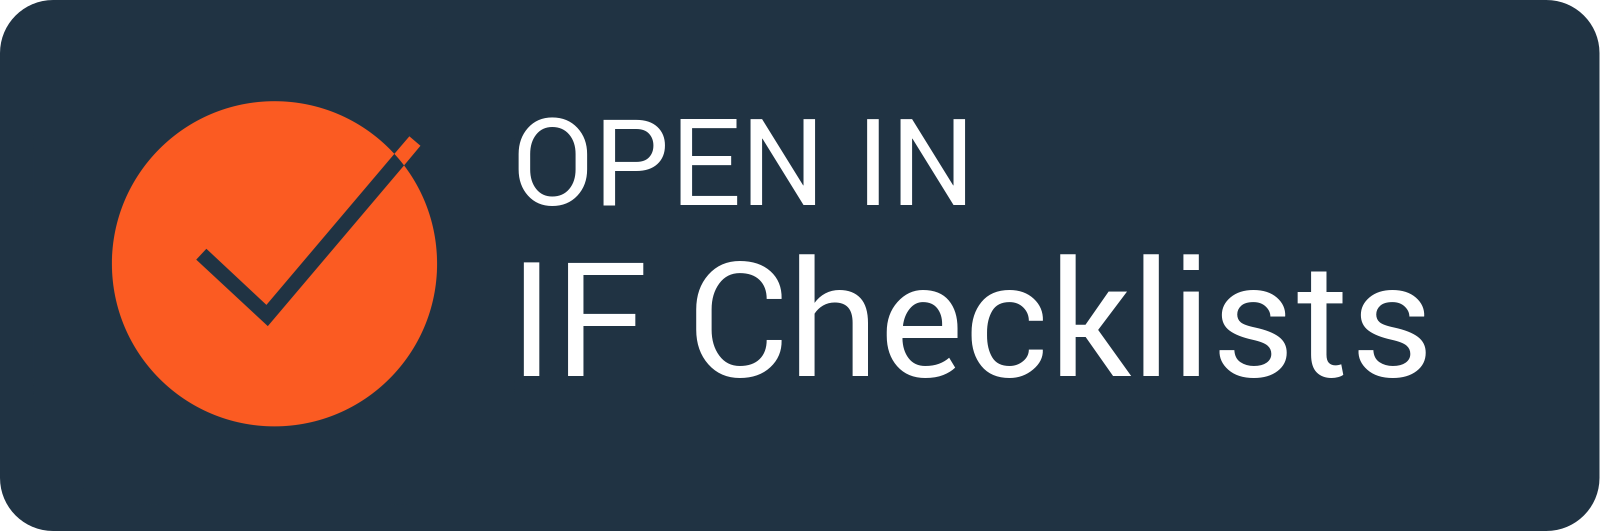 Open in IF Checklists